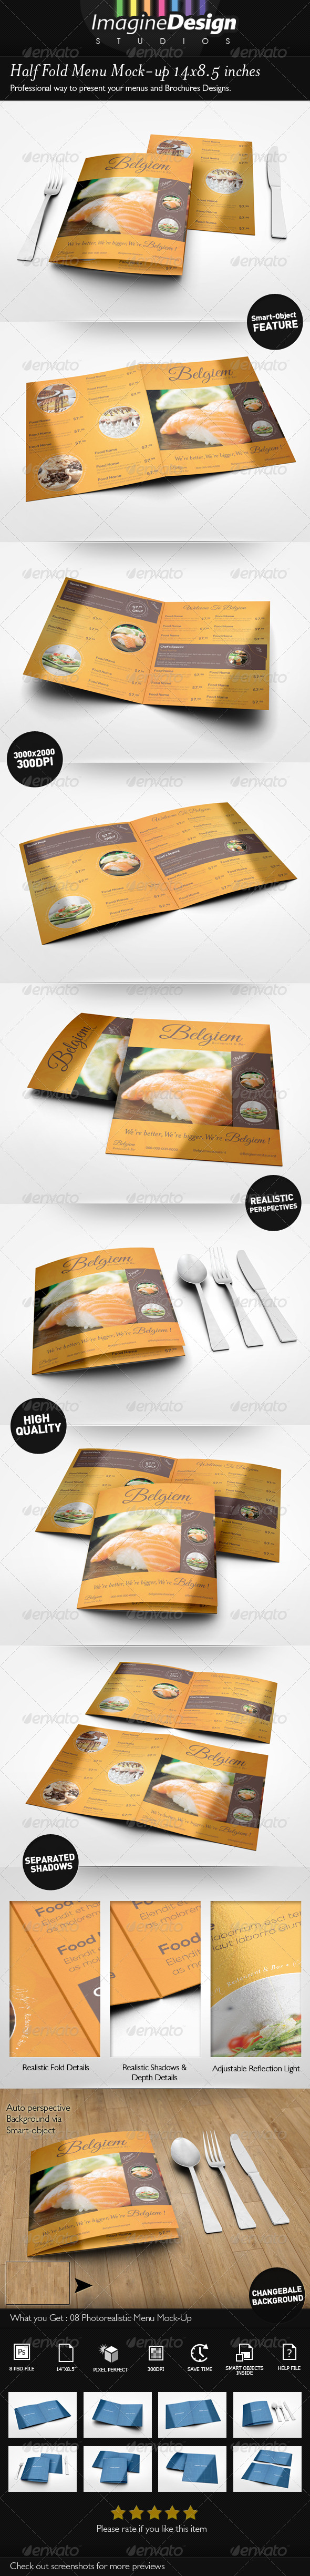 Half Fold Menu Mock-up 14x8.5 inches - Print Product Mock-Ups